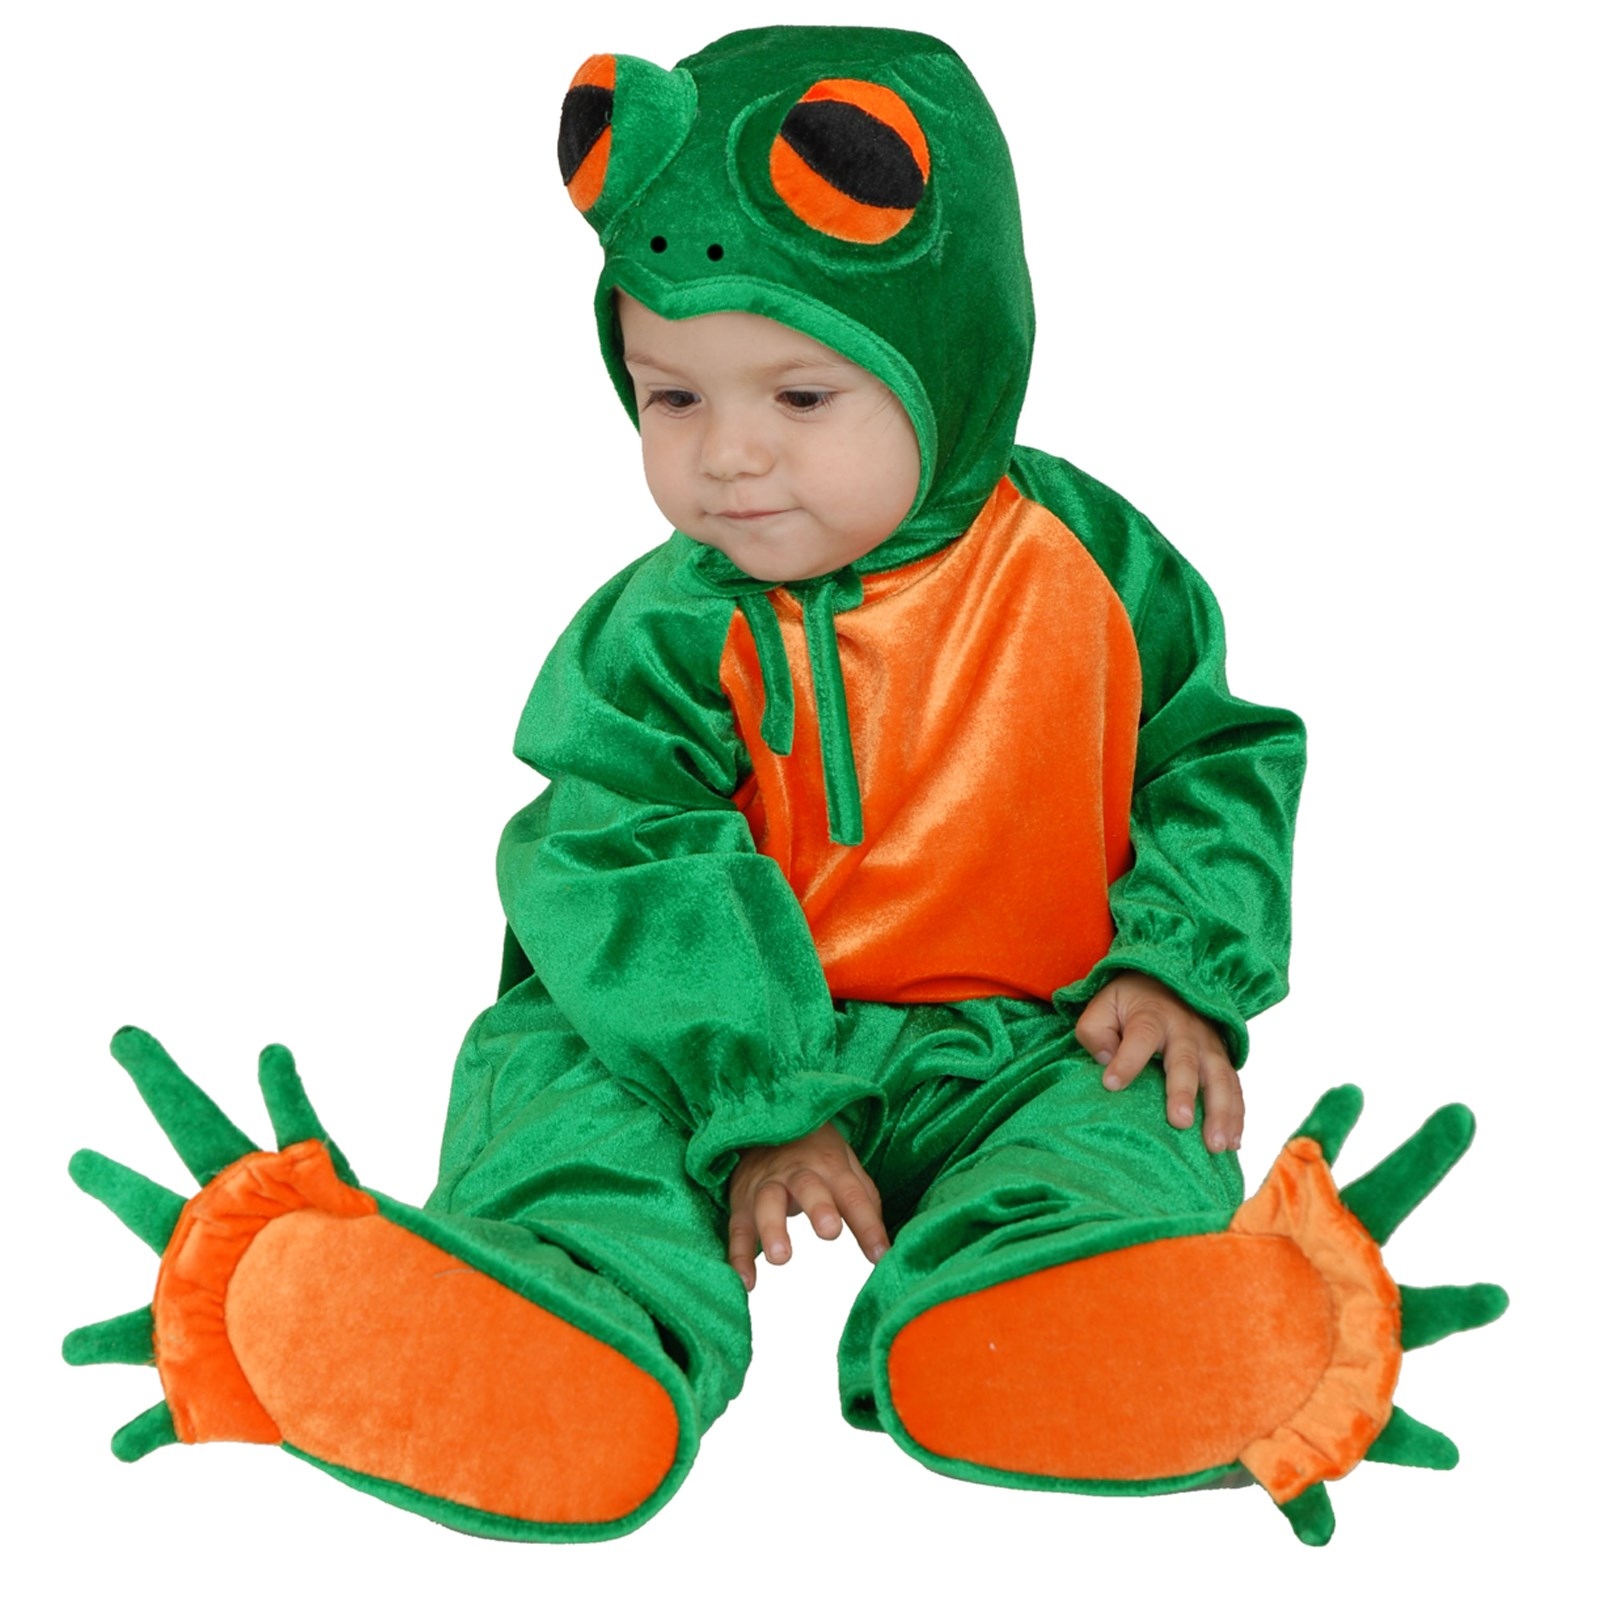 Little Frog Toddler / Child Costume Small